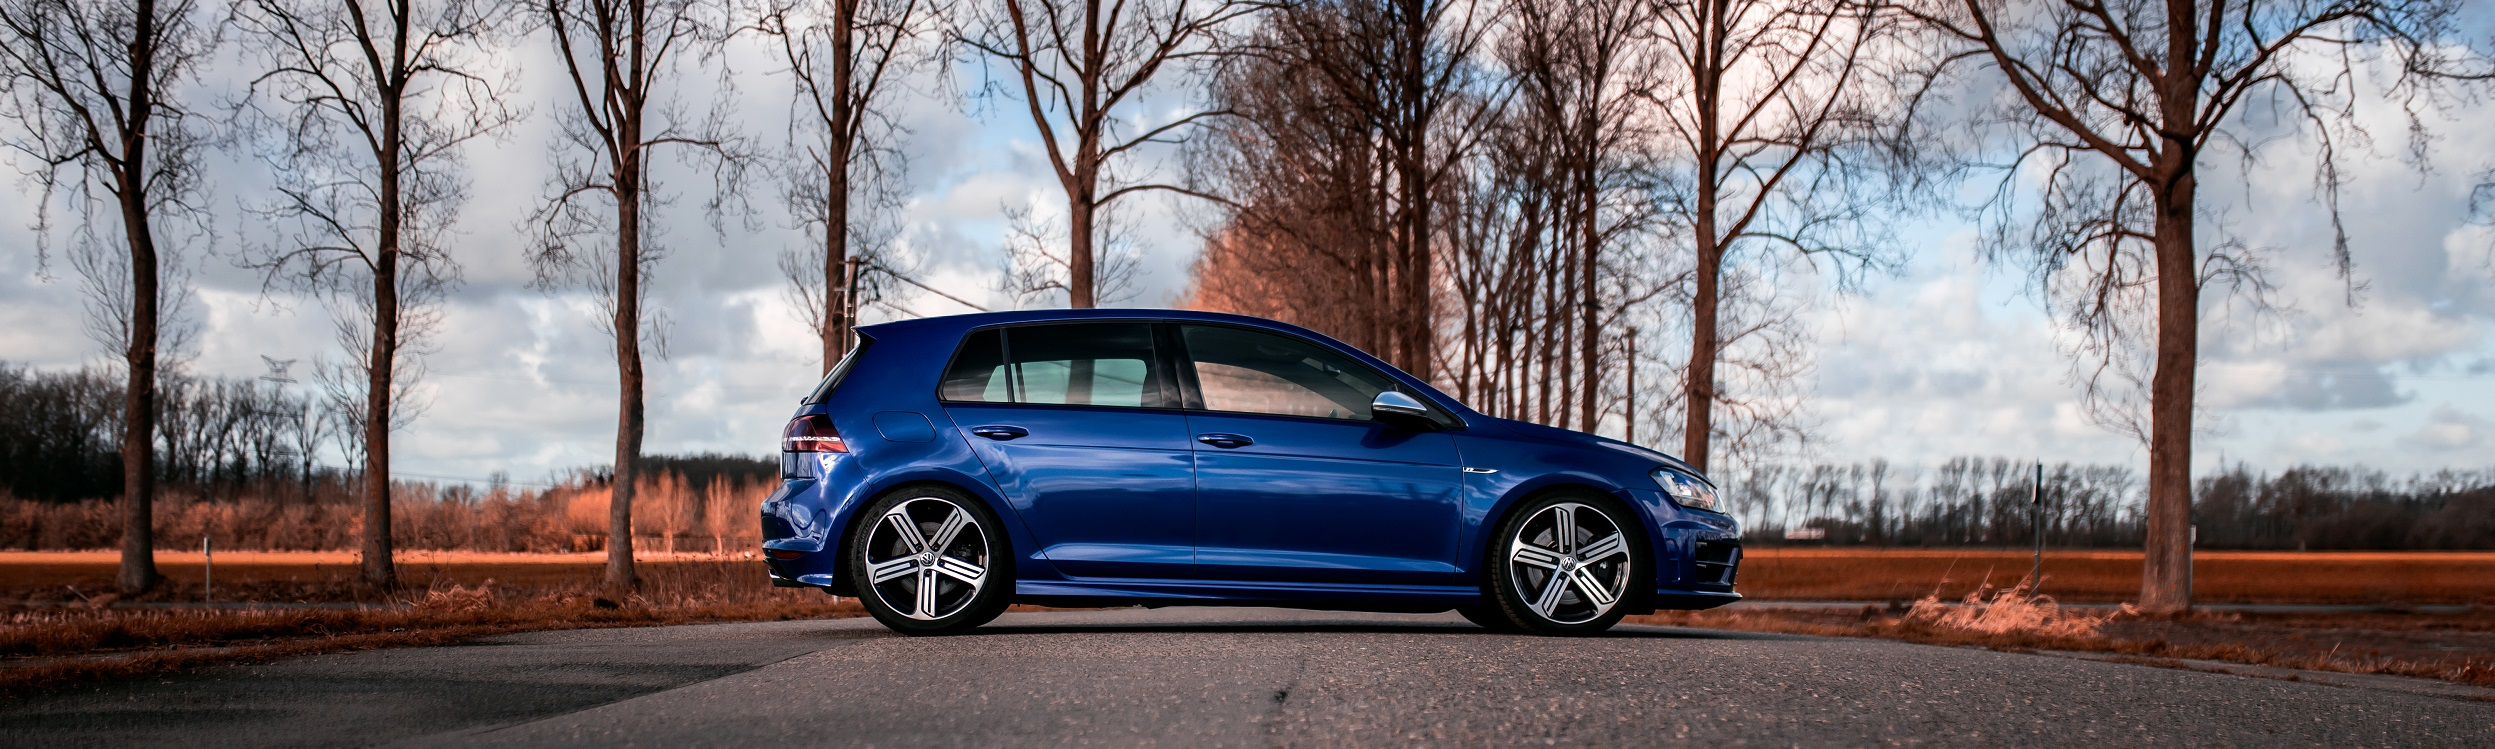 Volkswagen Golf R Stage Packages